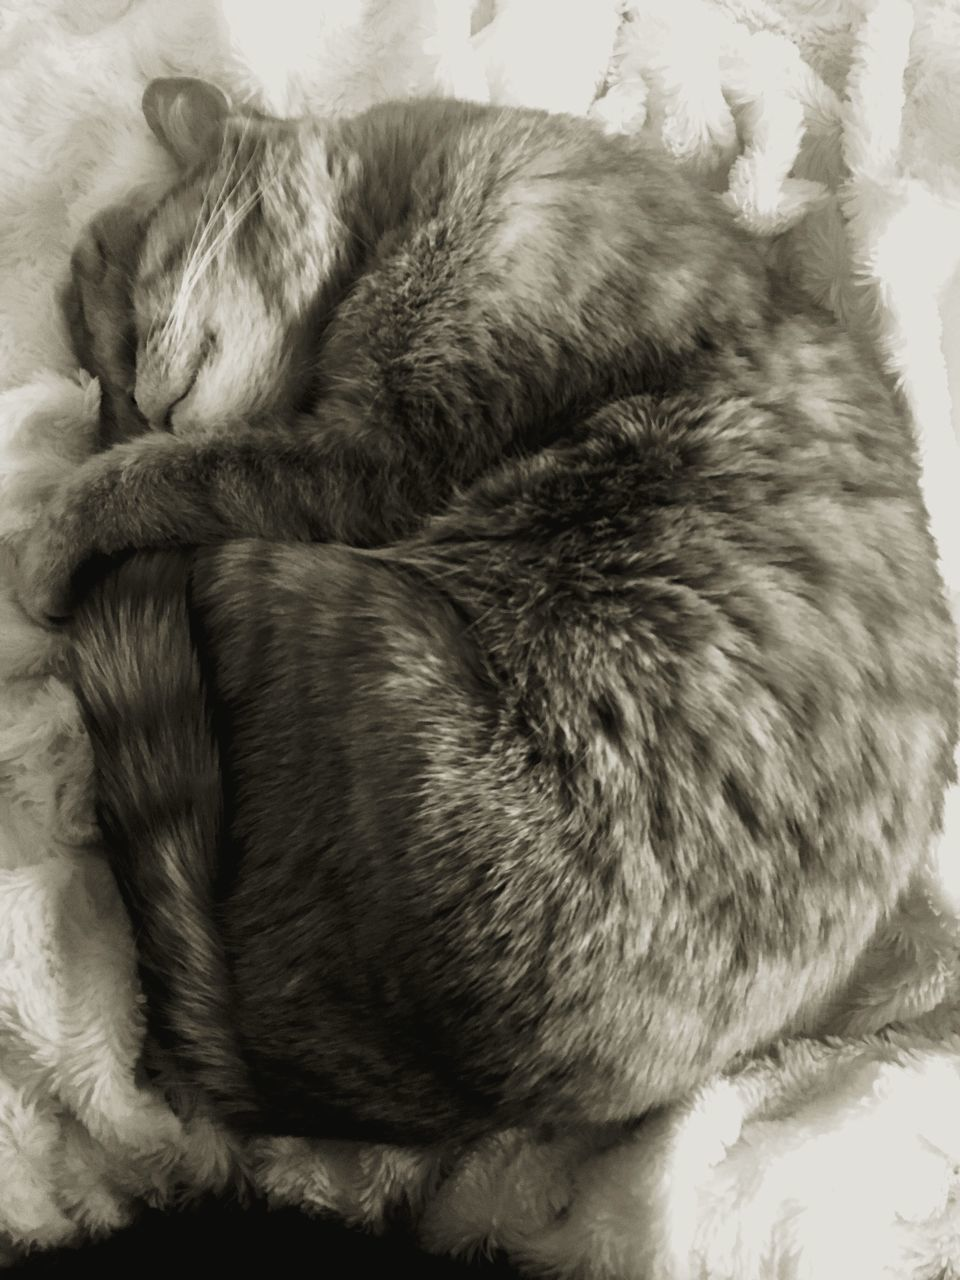 sleeping, indoors, comfortable, mammal, relaxation, pets, domestic animals, no people, animal themes, close-up, nature